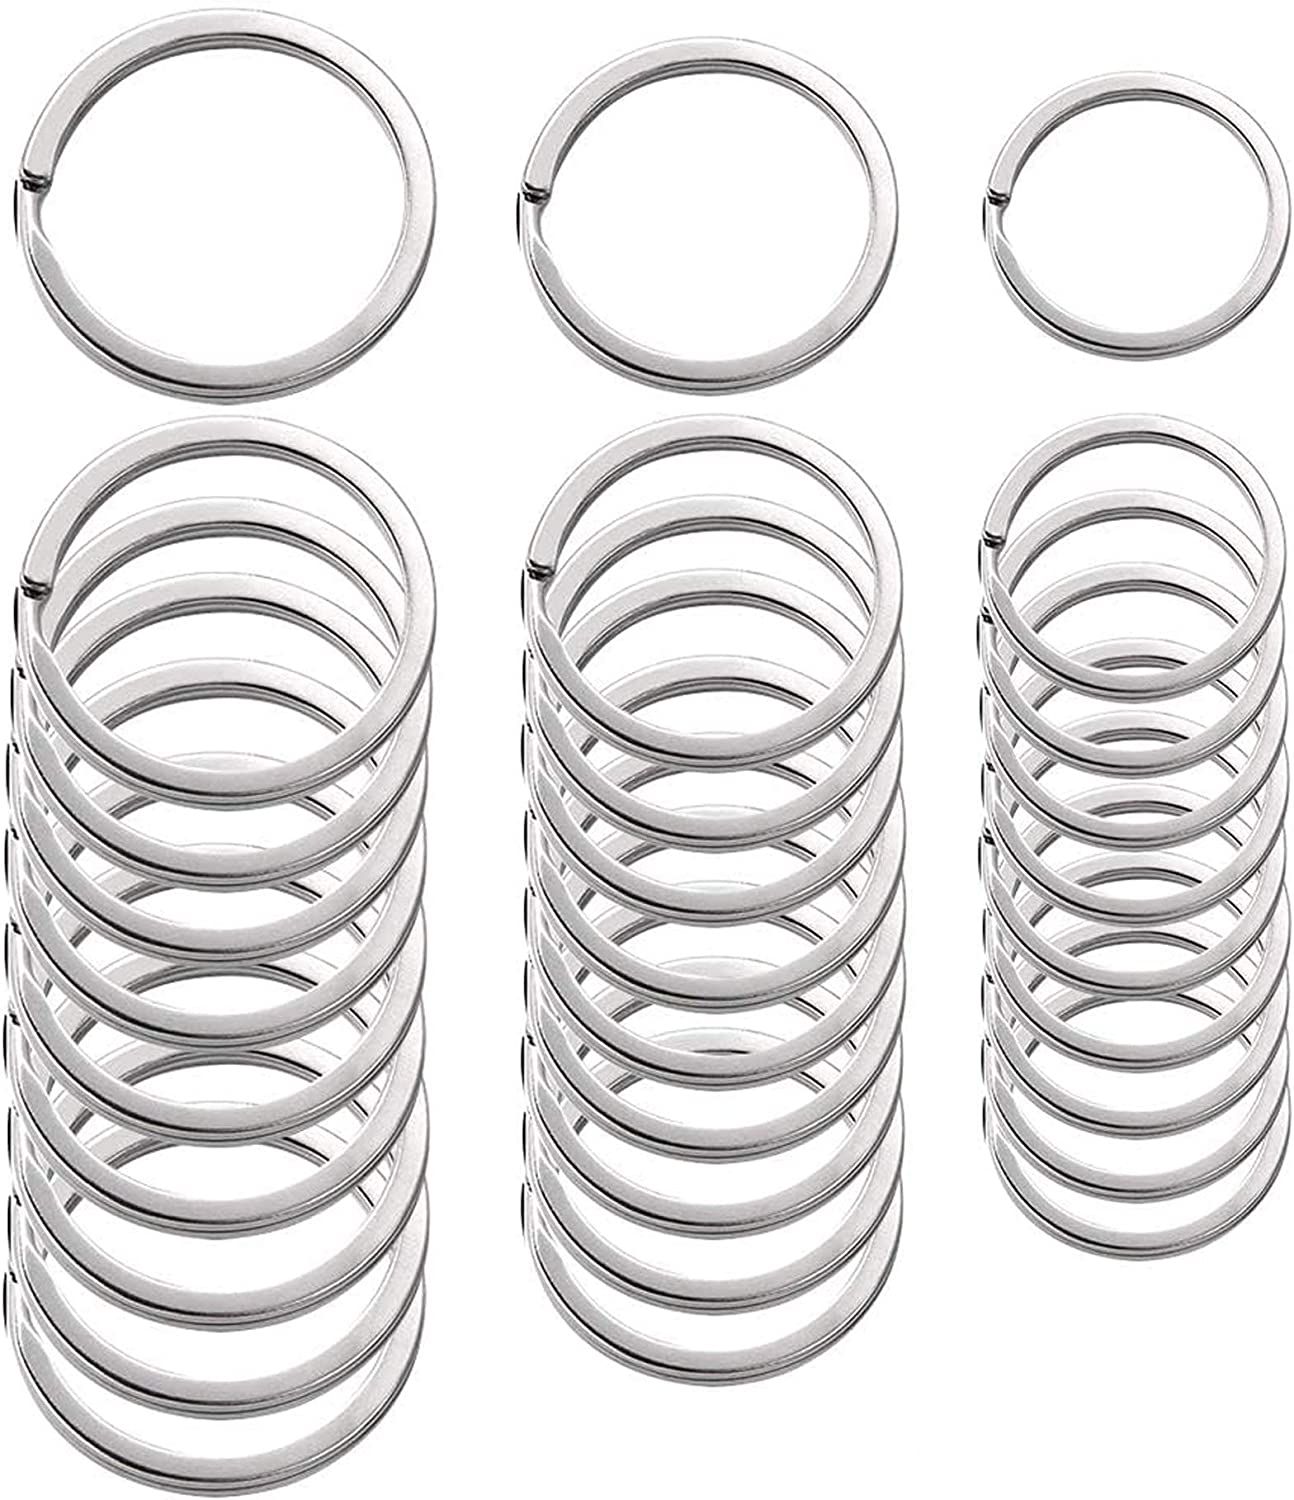 30 Pieces Flat Key Rings Metal Keychain Rings Split Rings Flat for Home Car Quality Keyring Ring Attachment - Nickel Plated, 3 Sizes